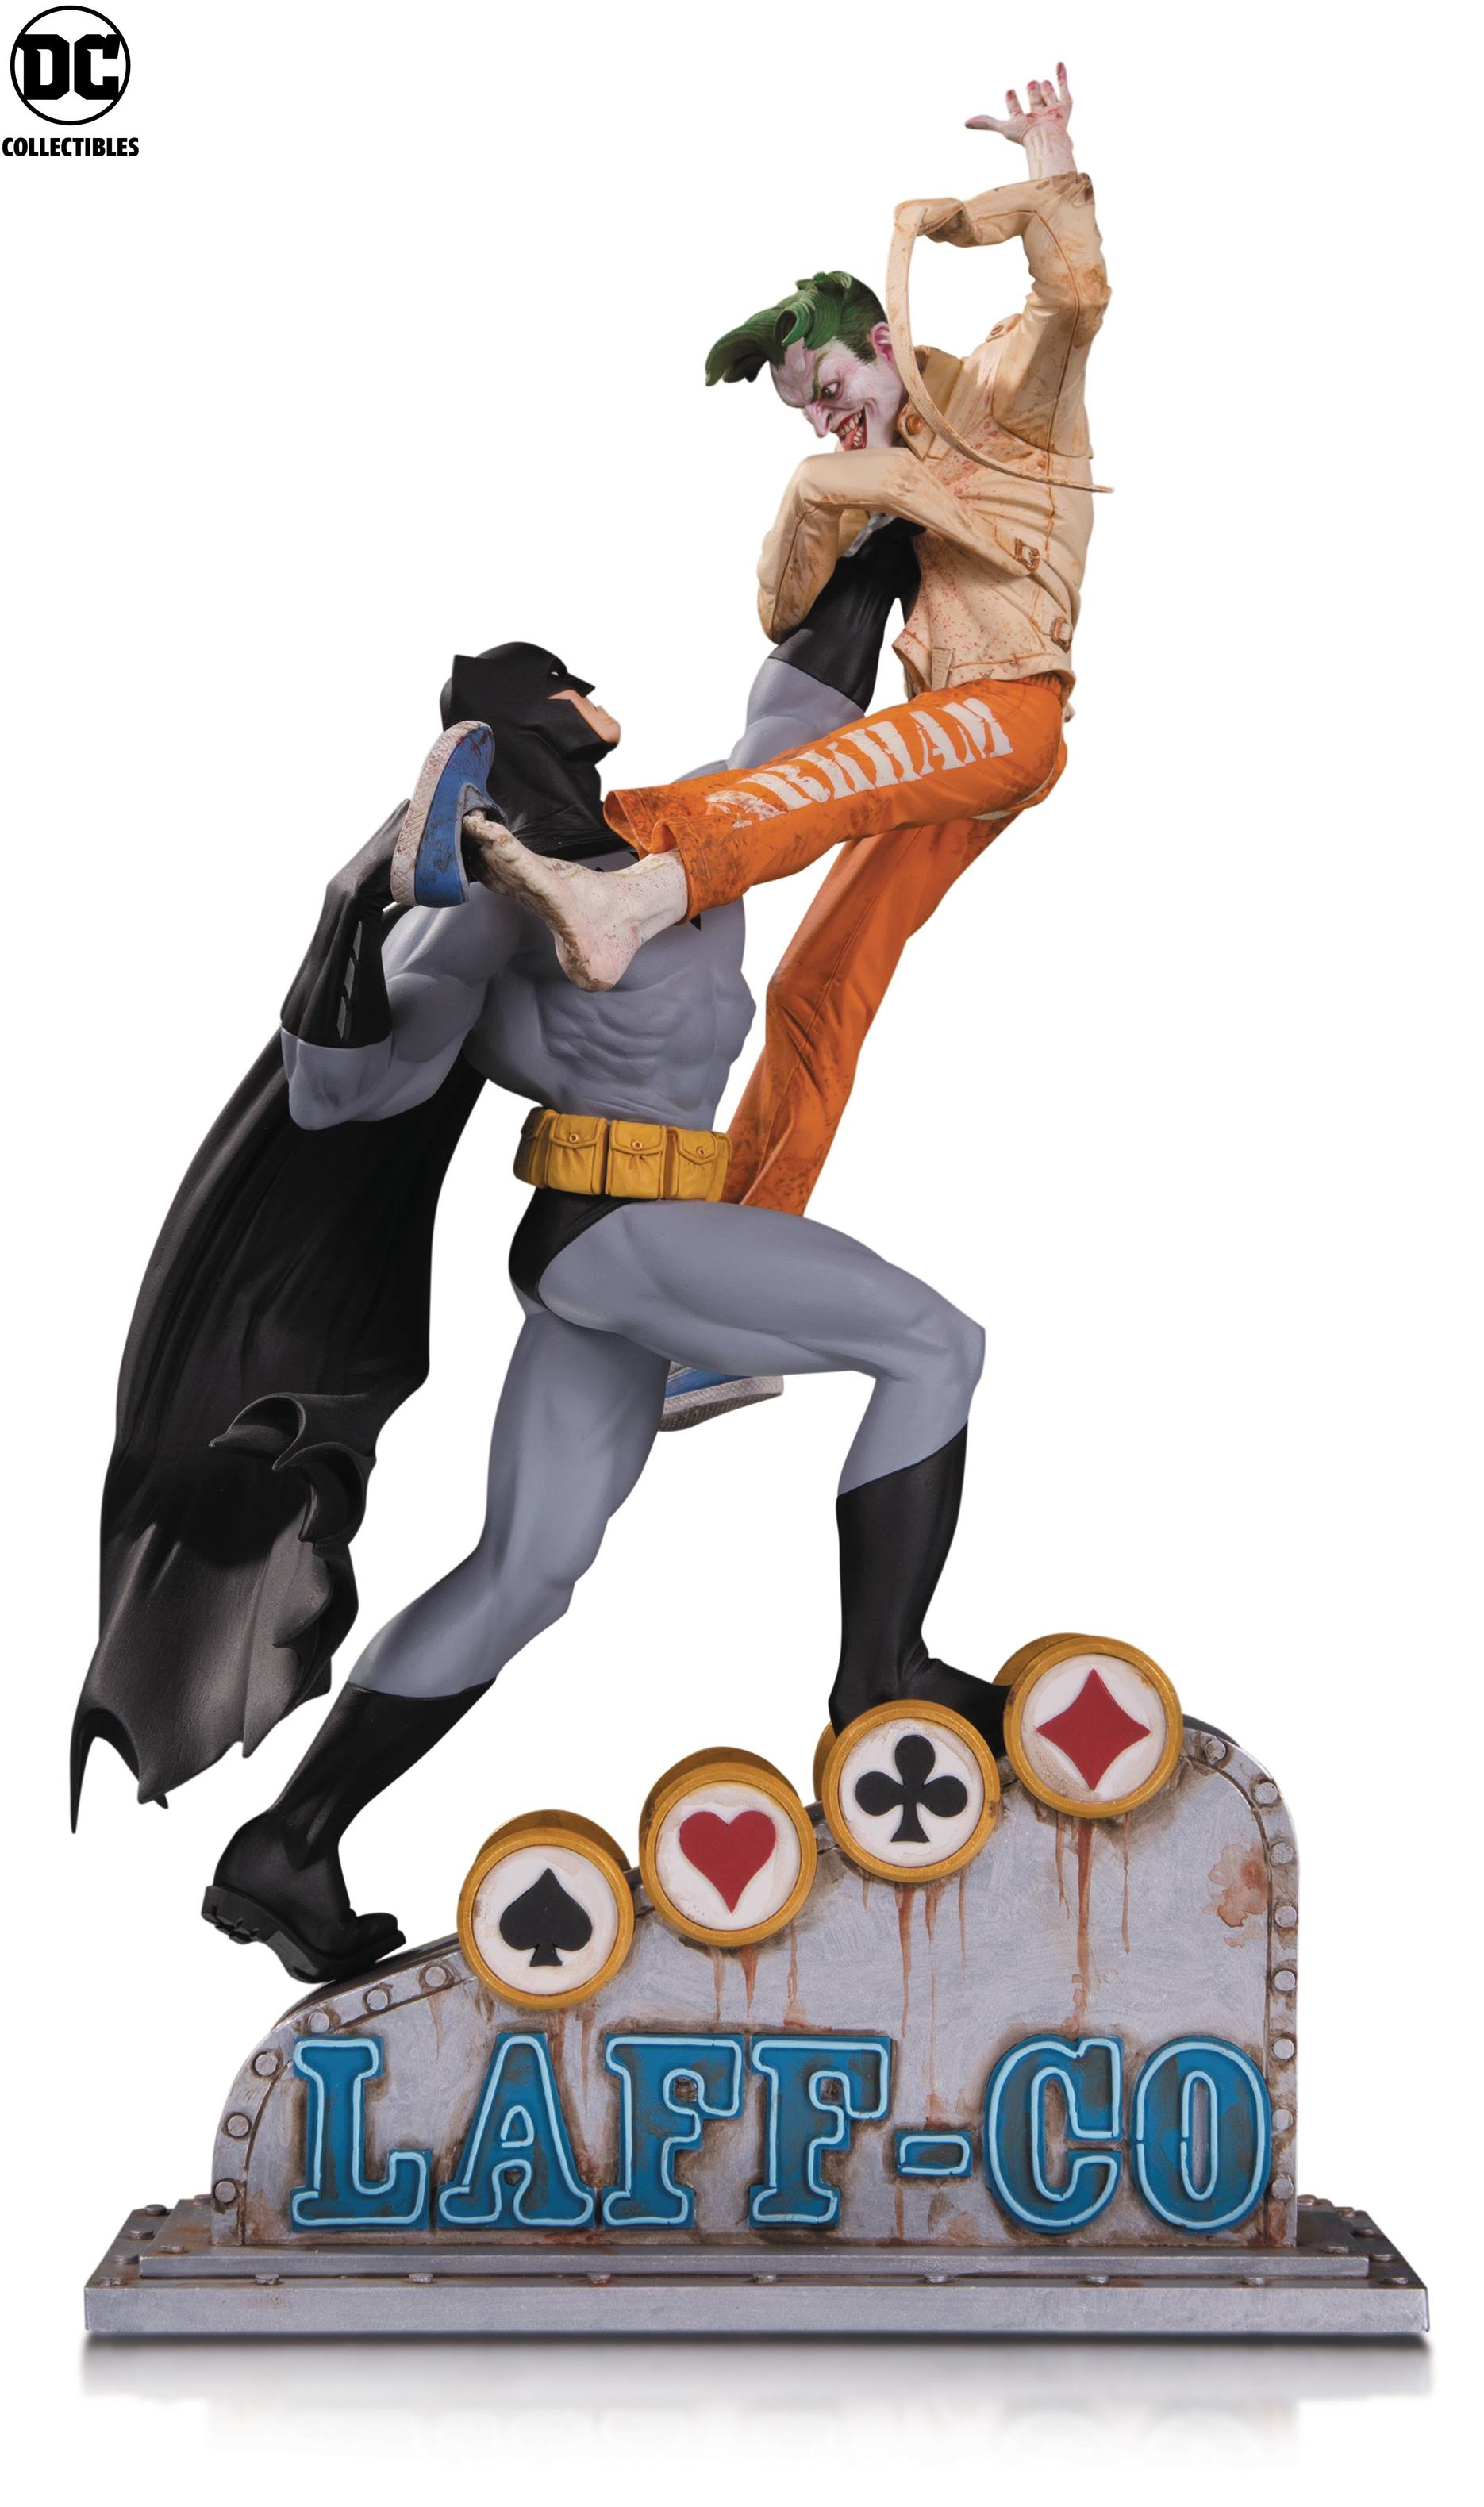 DC Comics Batman vs Joker Laff Co Battle Statue